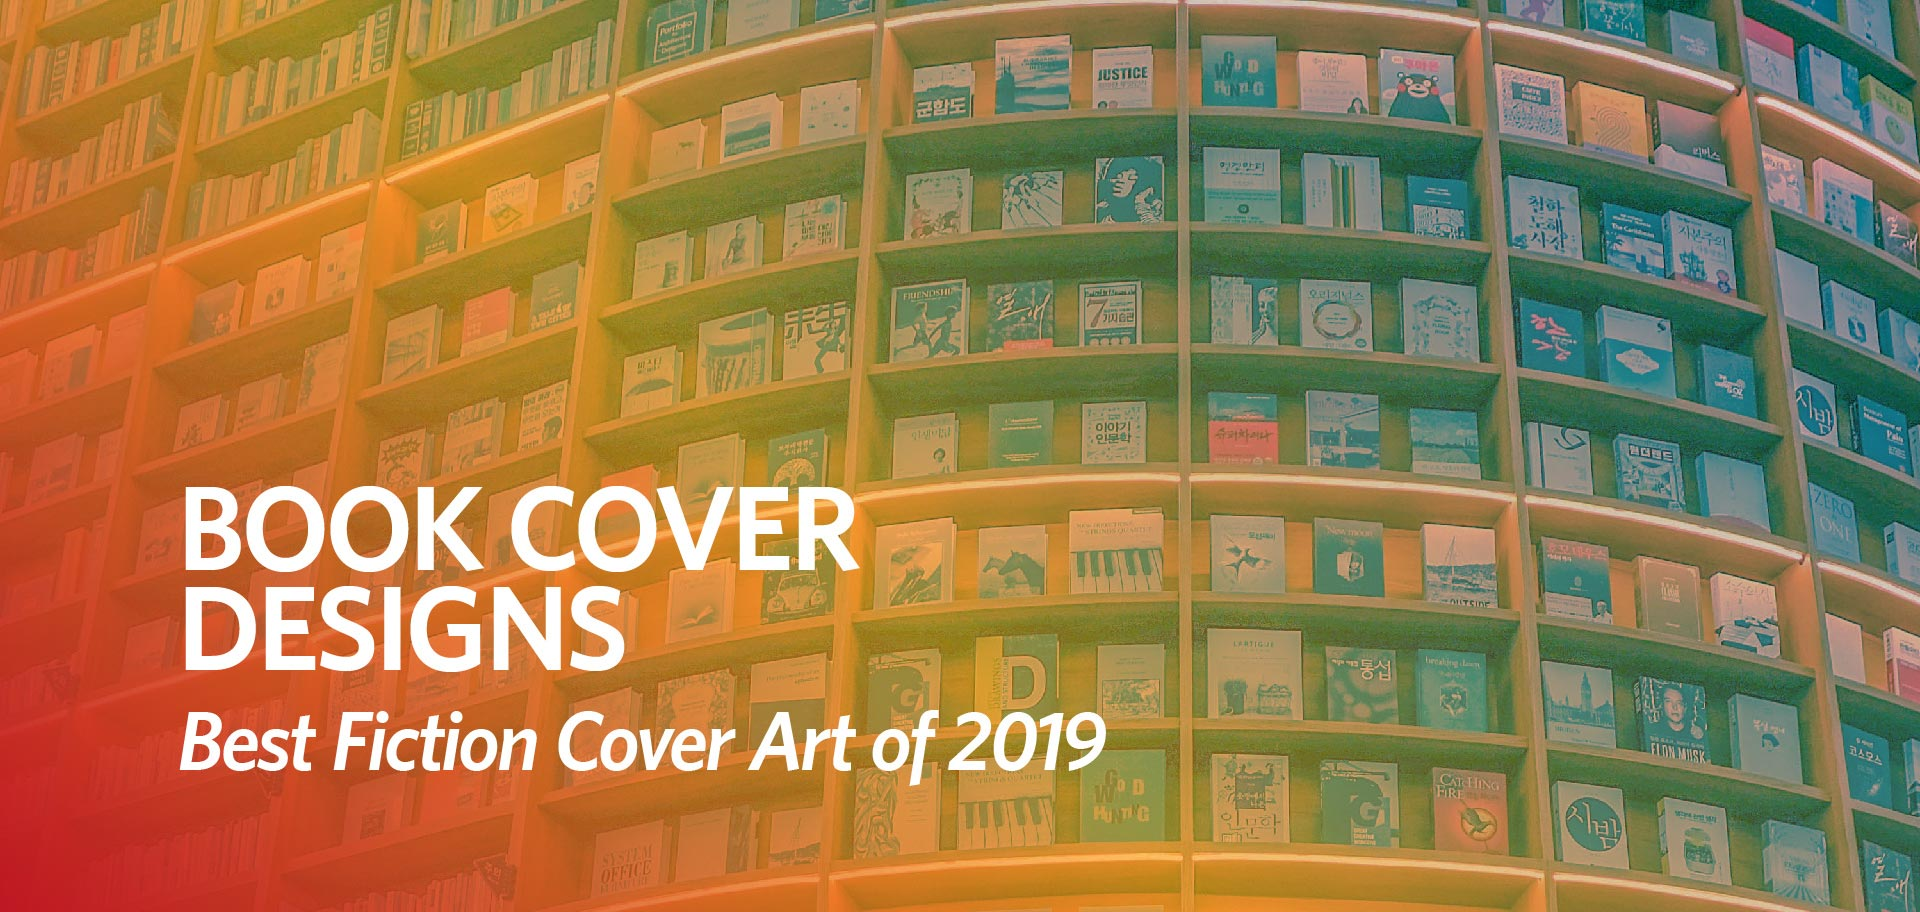 Book cover designs: Best Fiction Cover Art of 2019 by Kettle Fire Creative blog book cover design Book Cover Designs: Best Fiction Cover Art of 2019 book covers fi